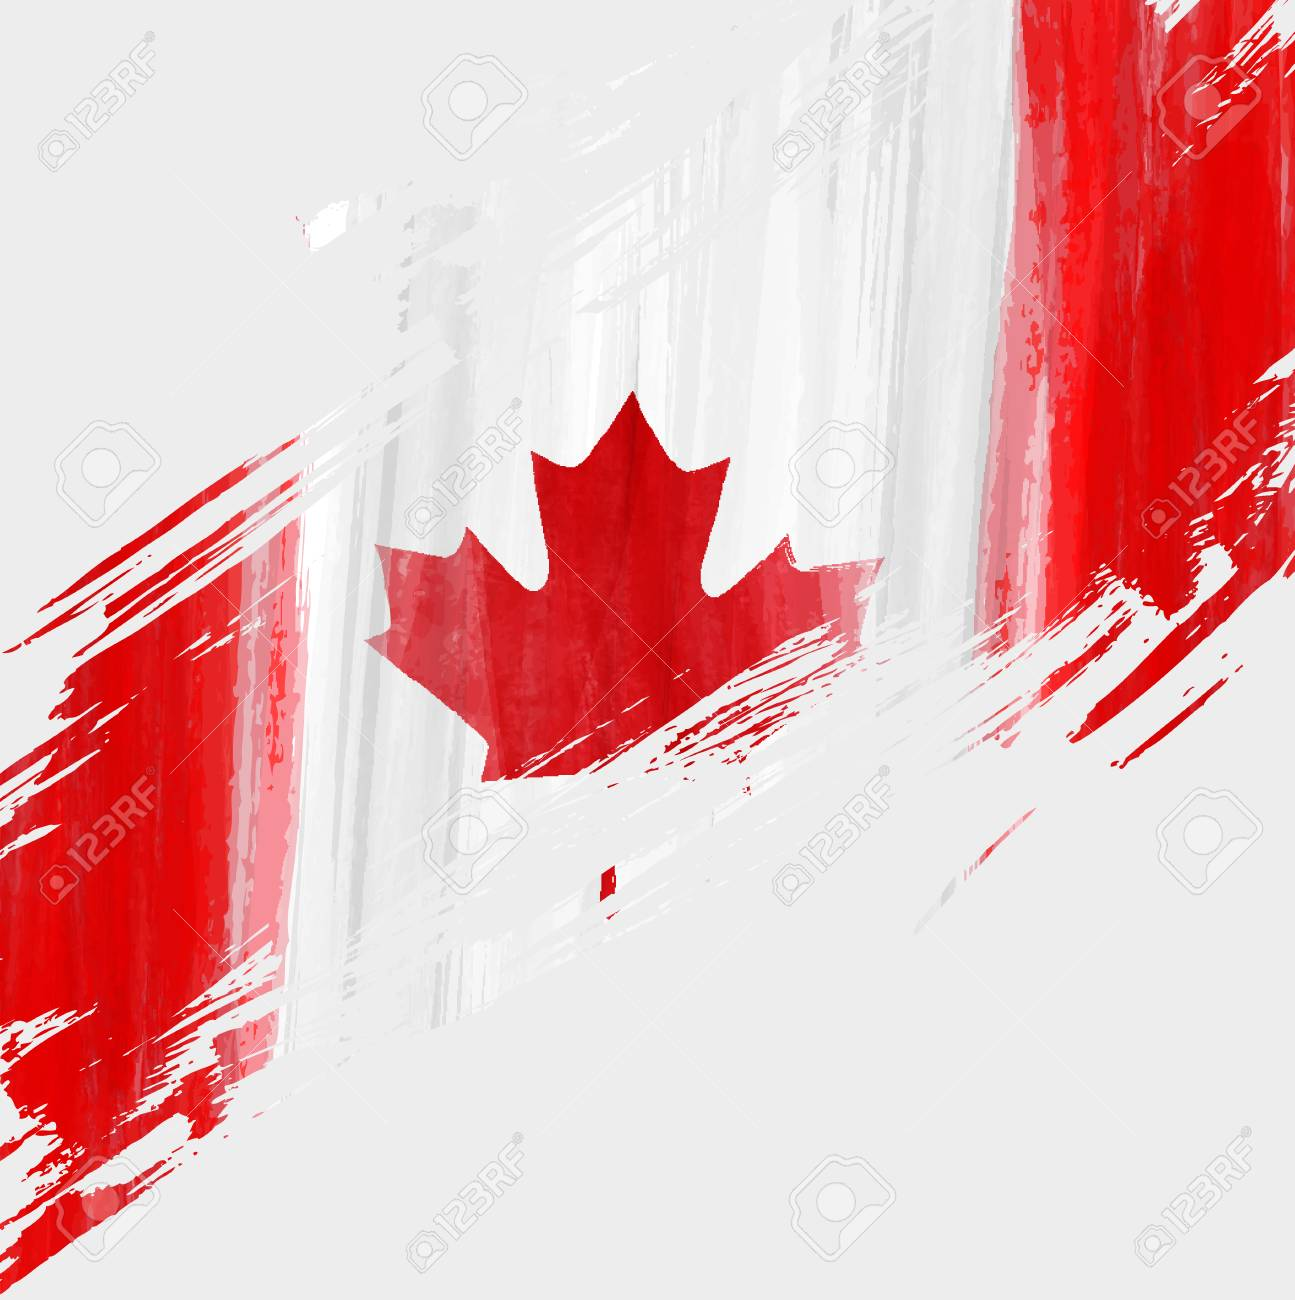 Grunge Canadian Flag Background With Watercolor Brushed Lines 1295x1300